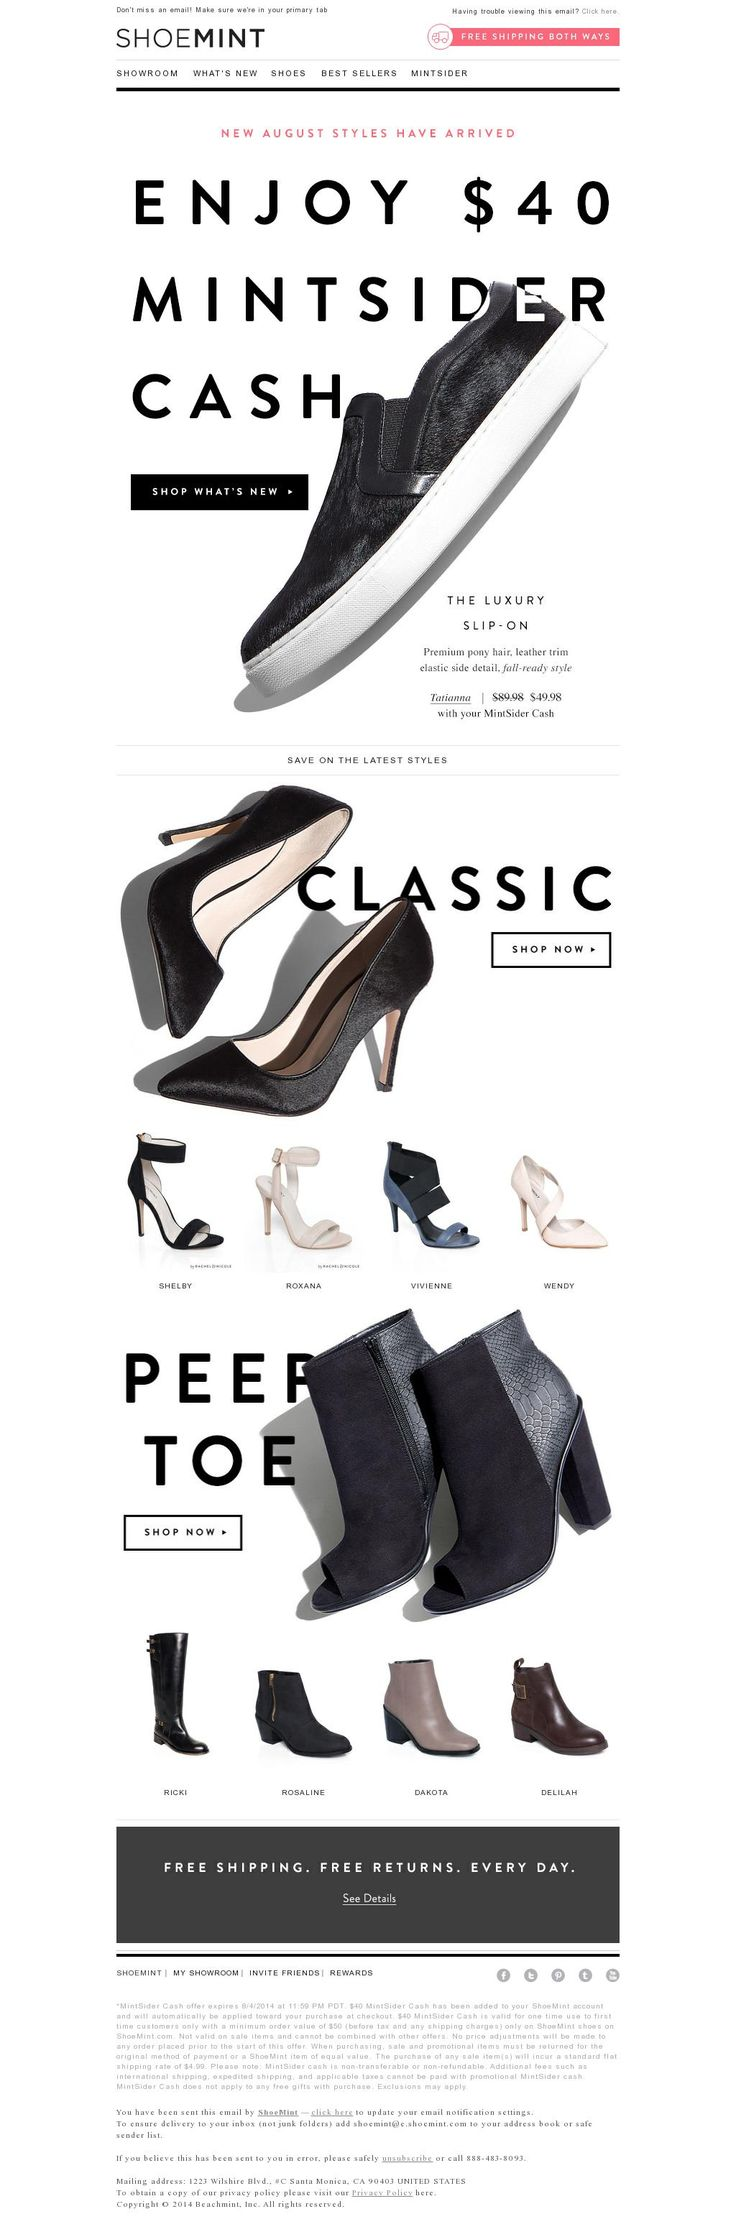 The placement of the shoes prompts you to scroll this email from Shoe Mint. I also like the loose kerning and leading in the headlines, though I'm not a fan of that little bit of reverse type in the main headline. The use of it is so slight that it would be better to just scoot the shoe down a tiny bit and not use it at all.